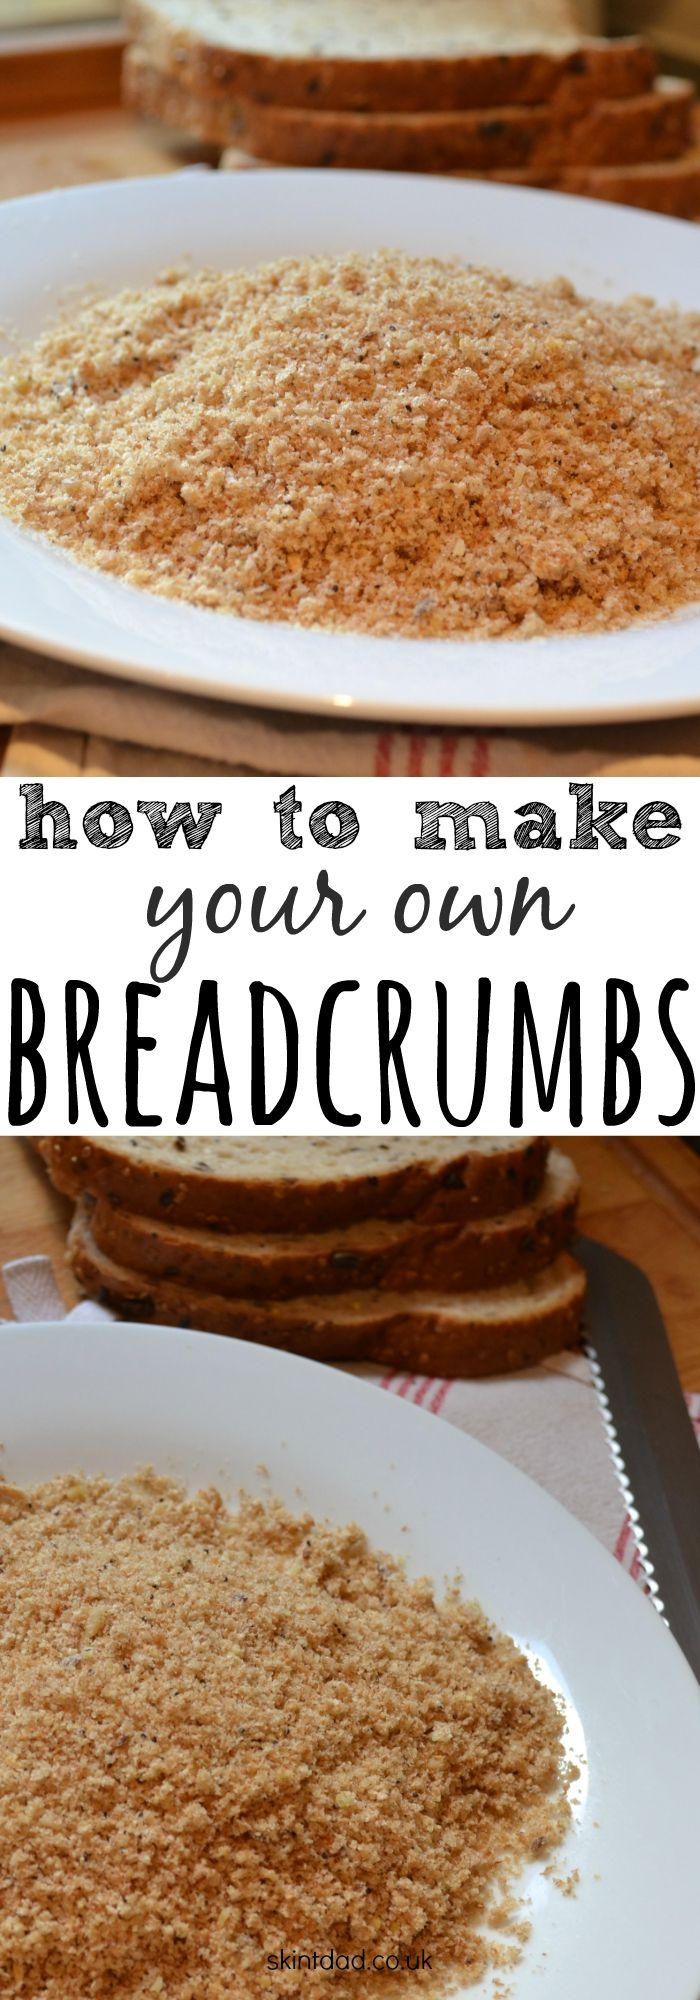 Instead of wasting your bread and throwing it in the bin, use it to make your own breadcrumbs instead and save a bit of cash in the process.